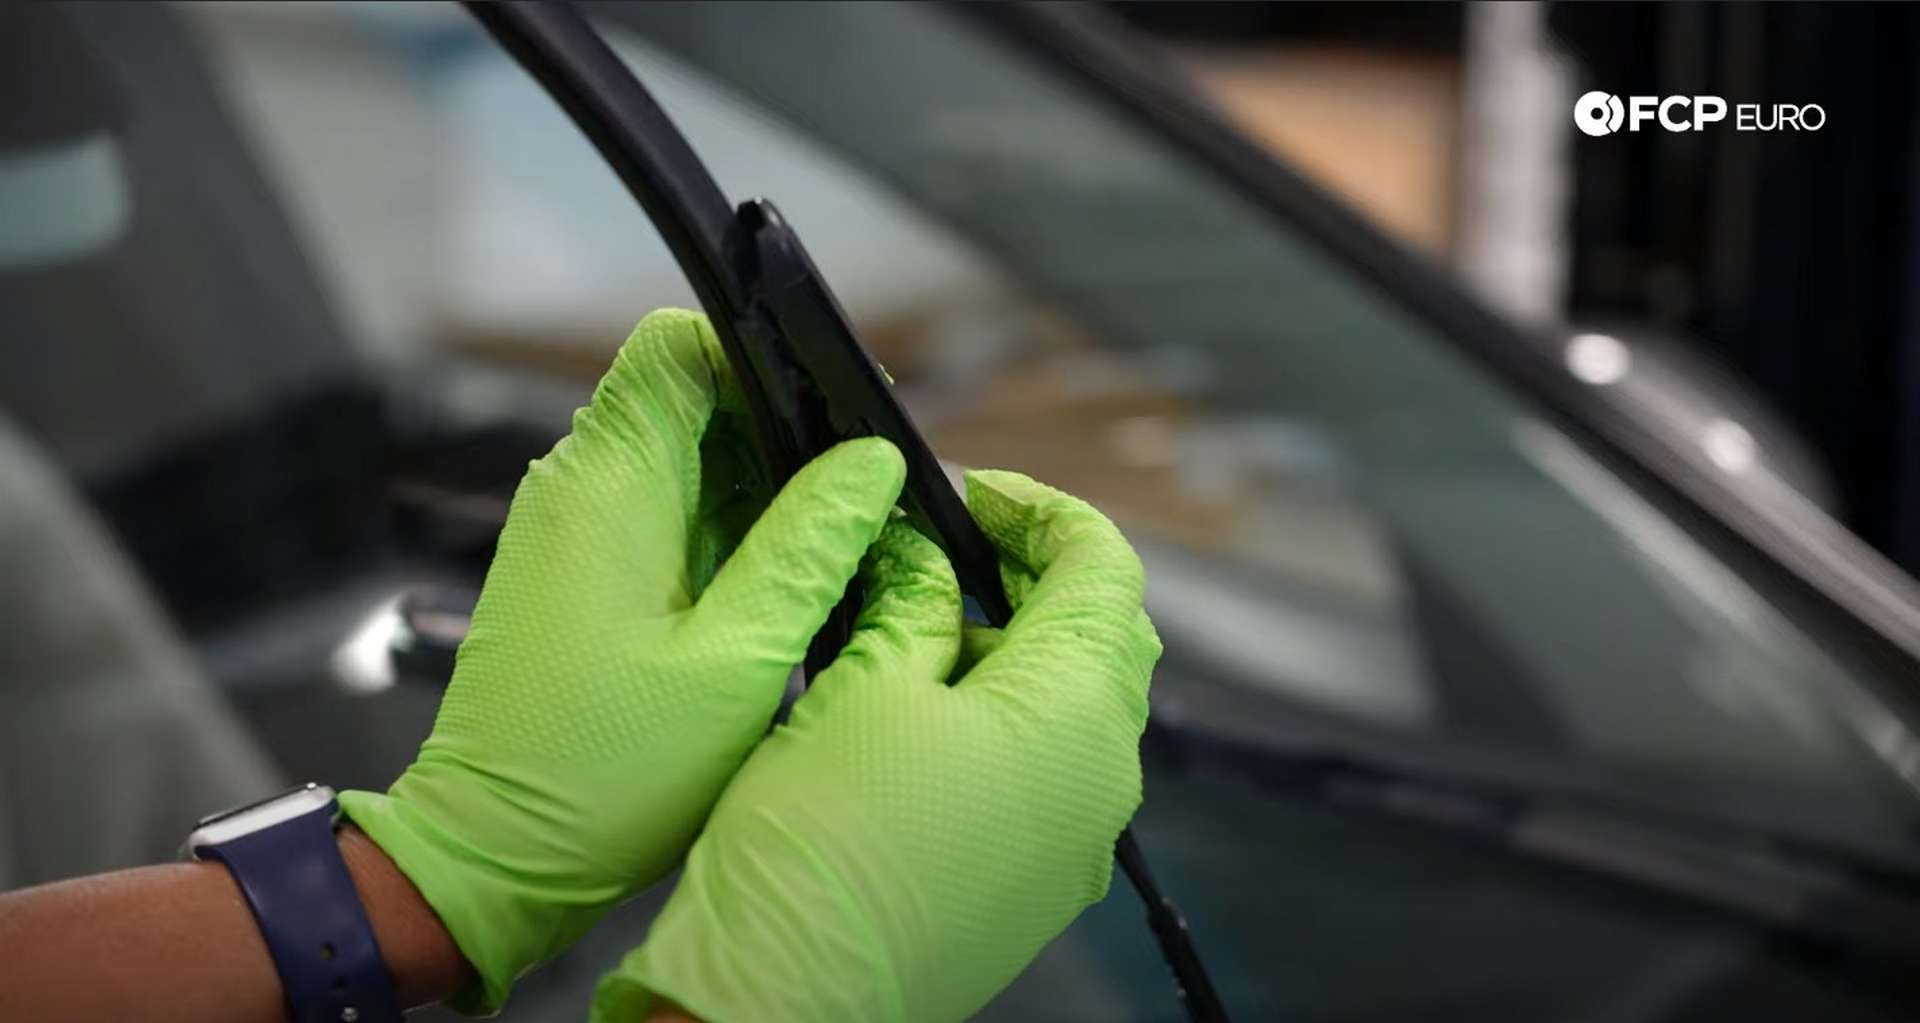 DIY Mercedes-Benz W205 Wiper Blade Replacement pressing the tabs to release the arm